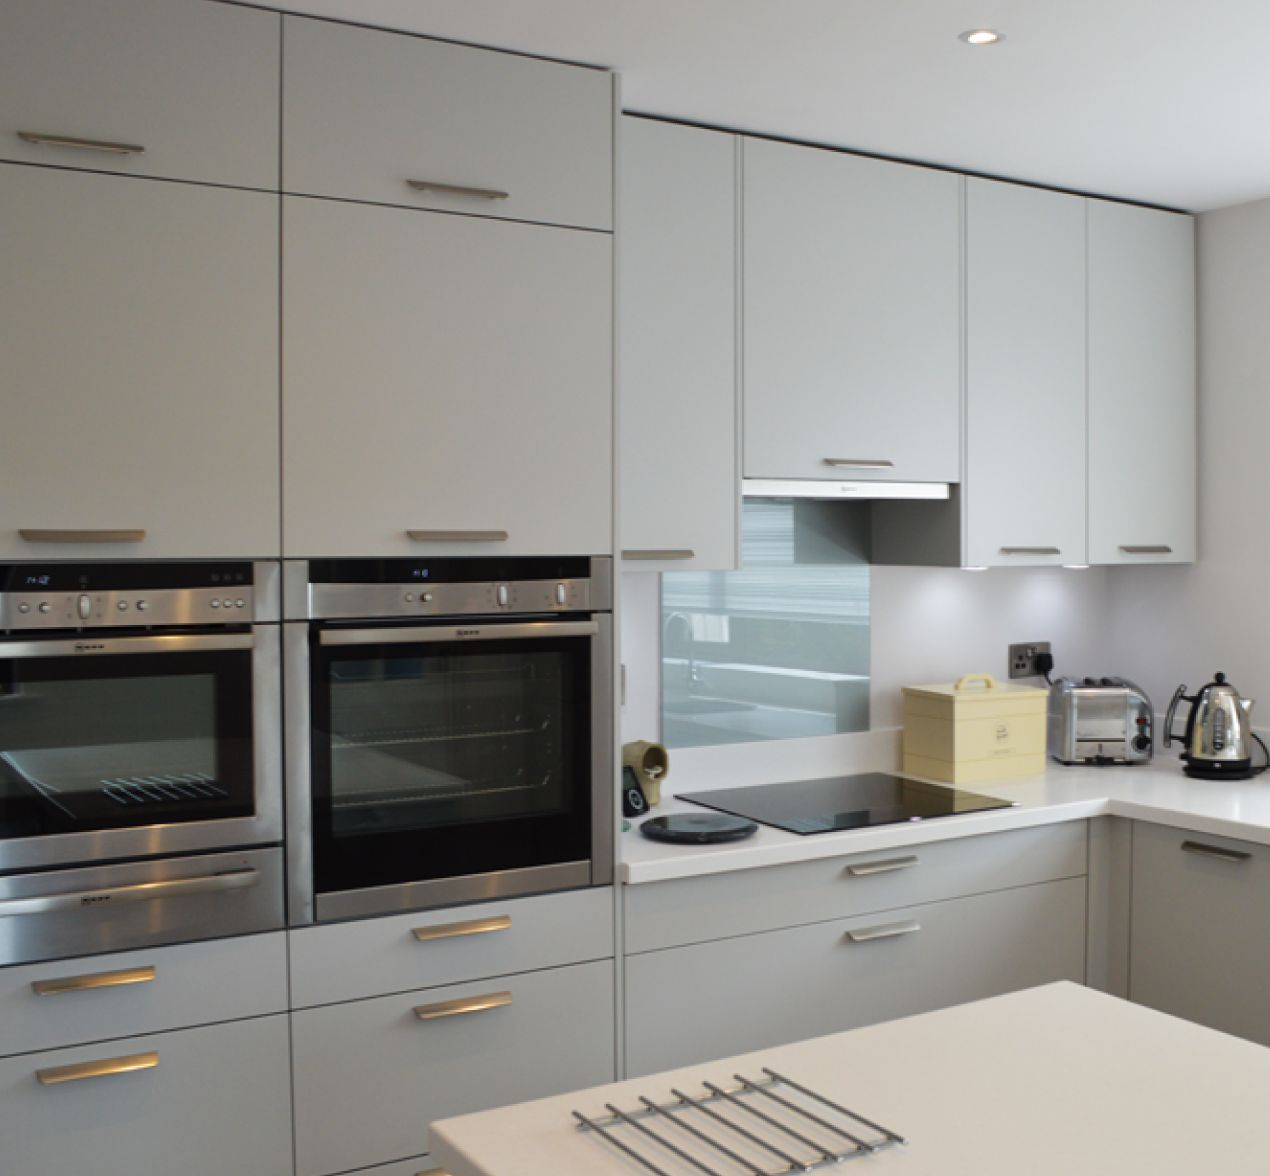 Kitchen Design Centre Hollinwood Flexible German Design Customer Kitchens Kitchen